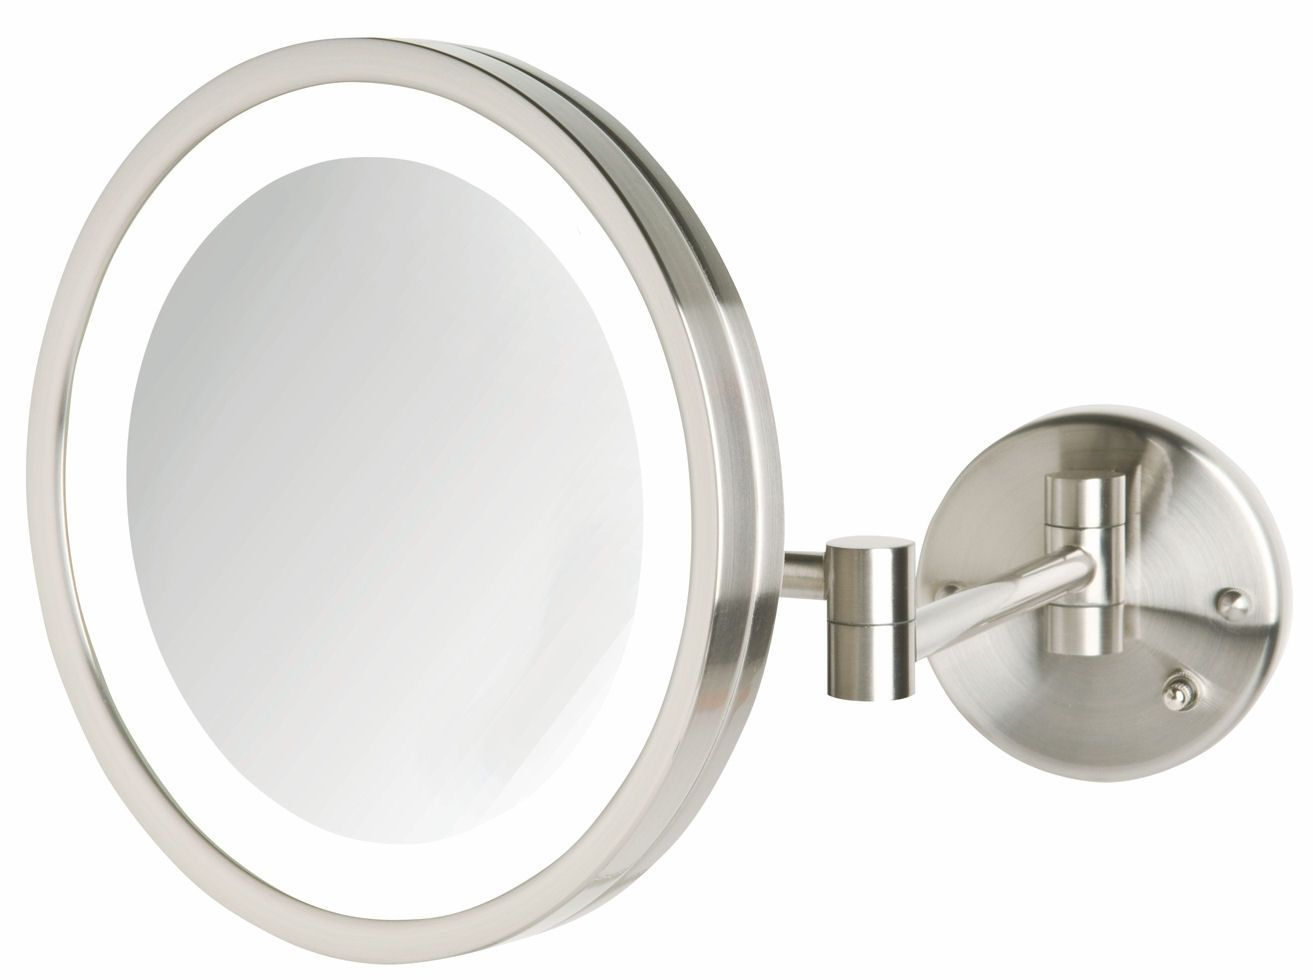 Conair Wall Mount Makeup Mirror